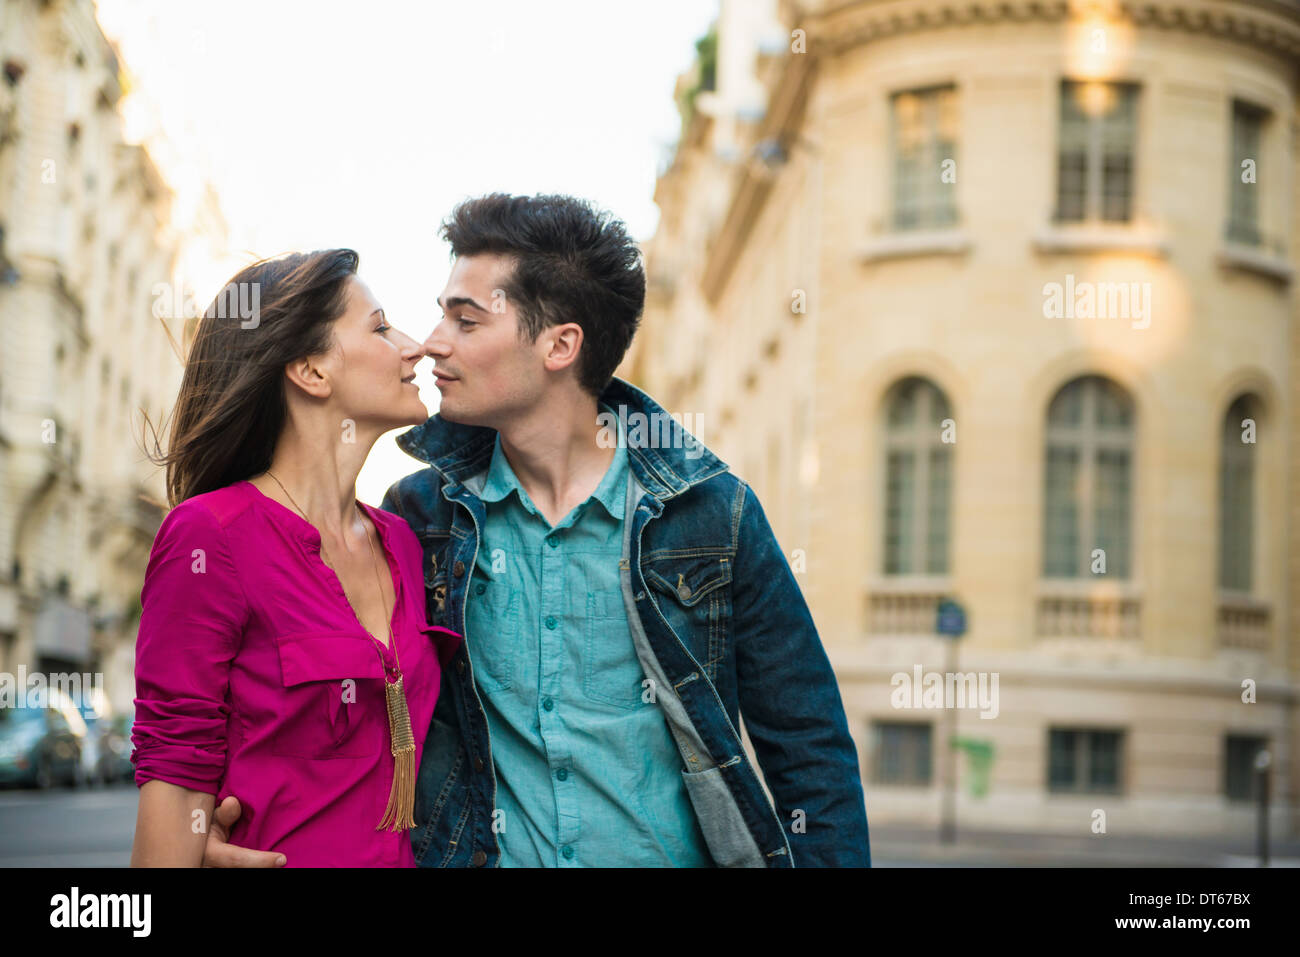 Young couple kissing on street, Paris, France Stock Photo